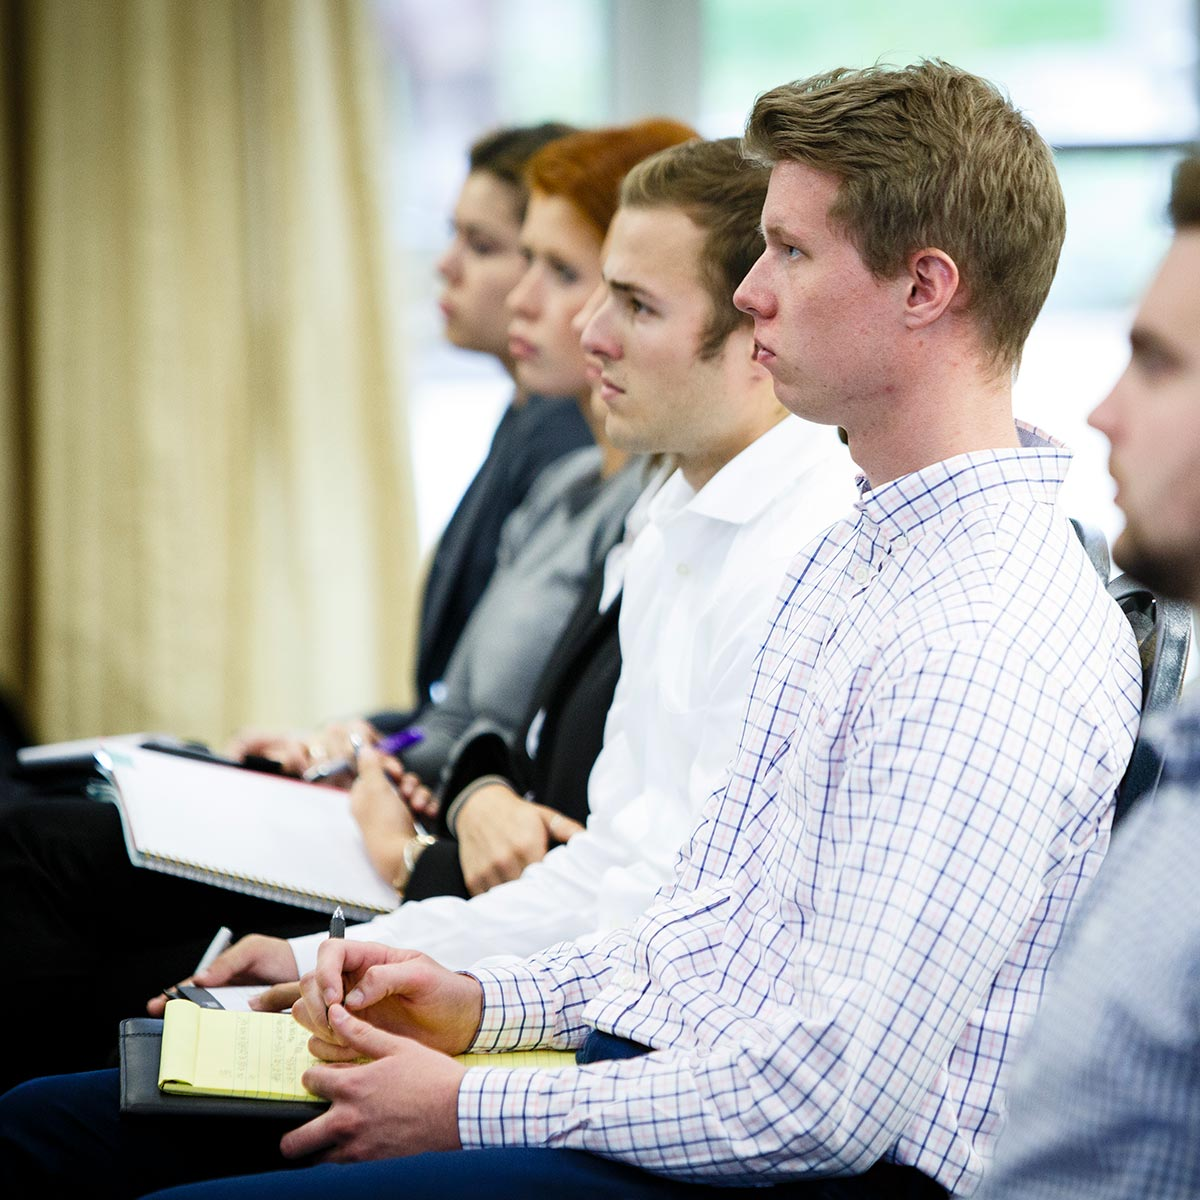 Students pay attention during an employer information session.